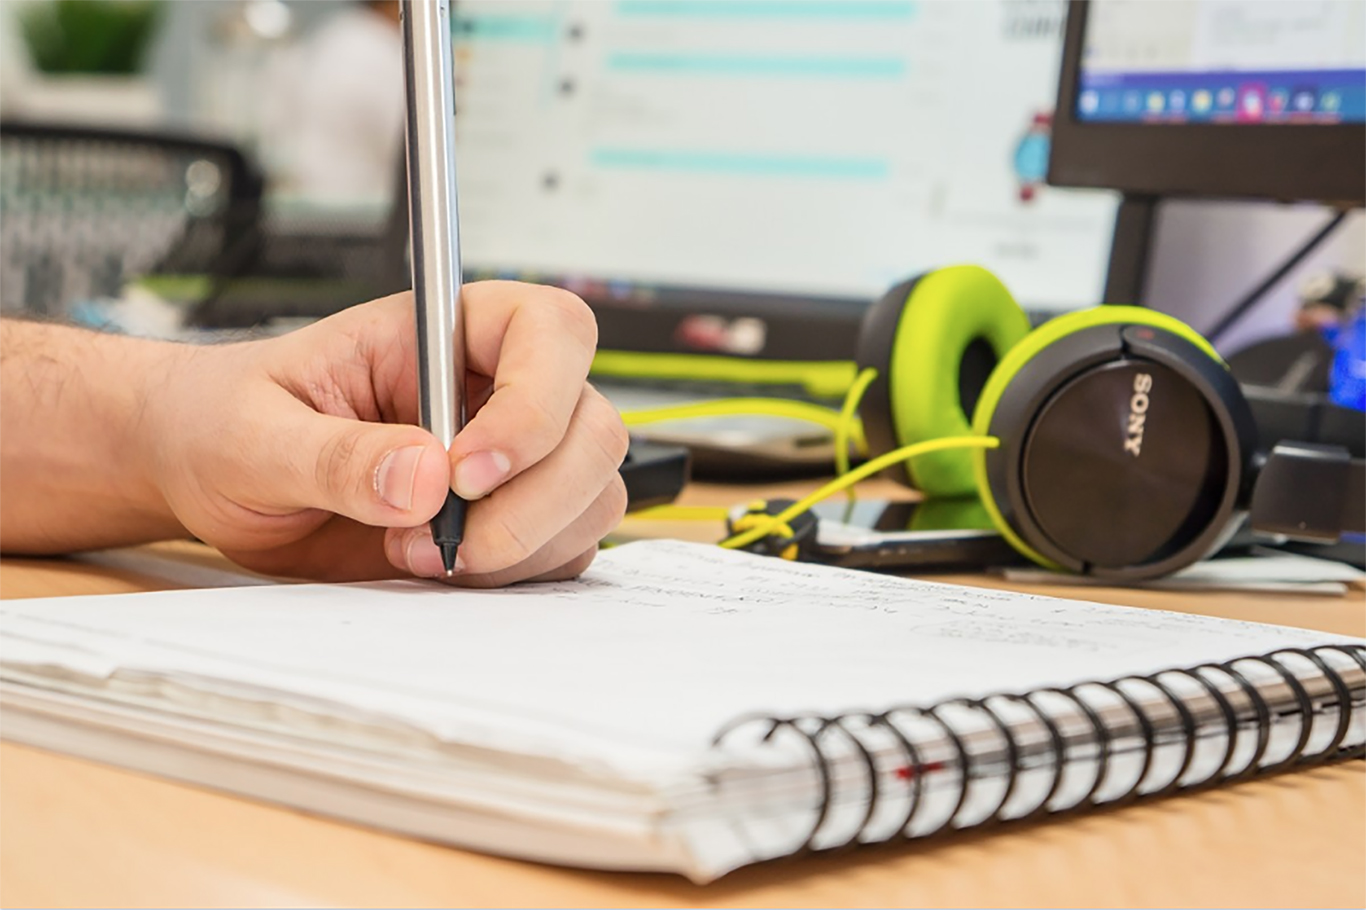 Studying to your favorite beats can improve your retention